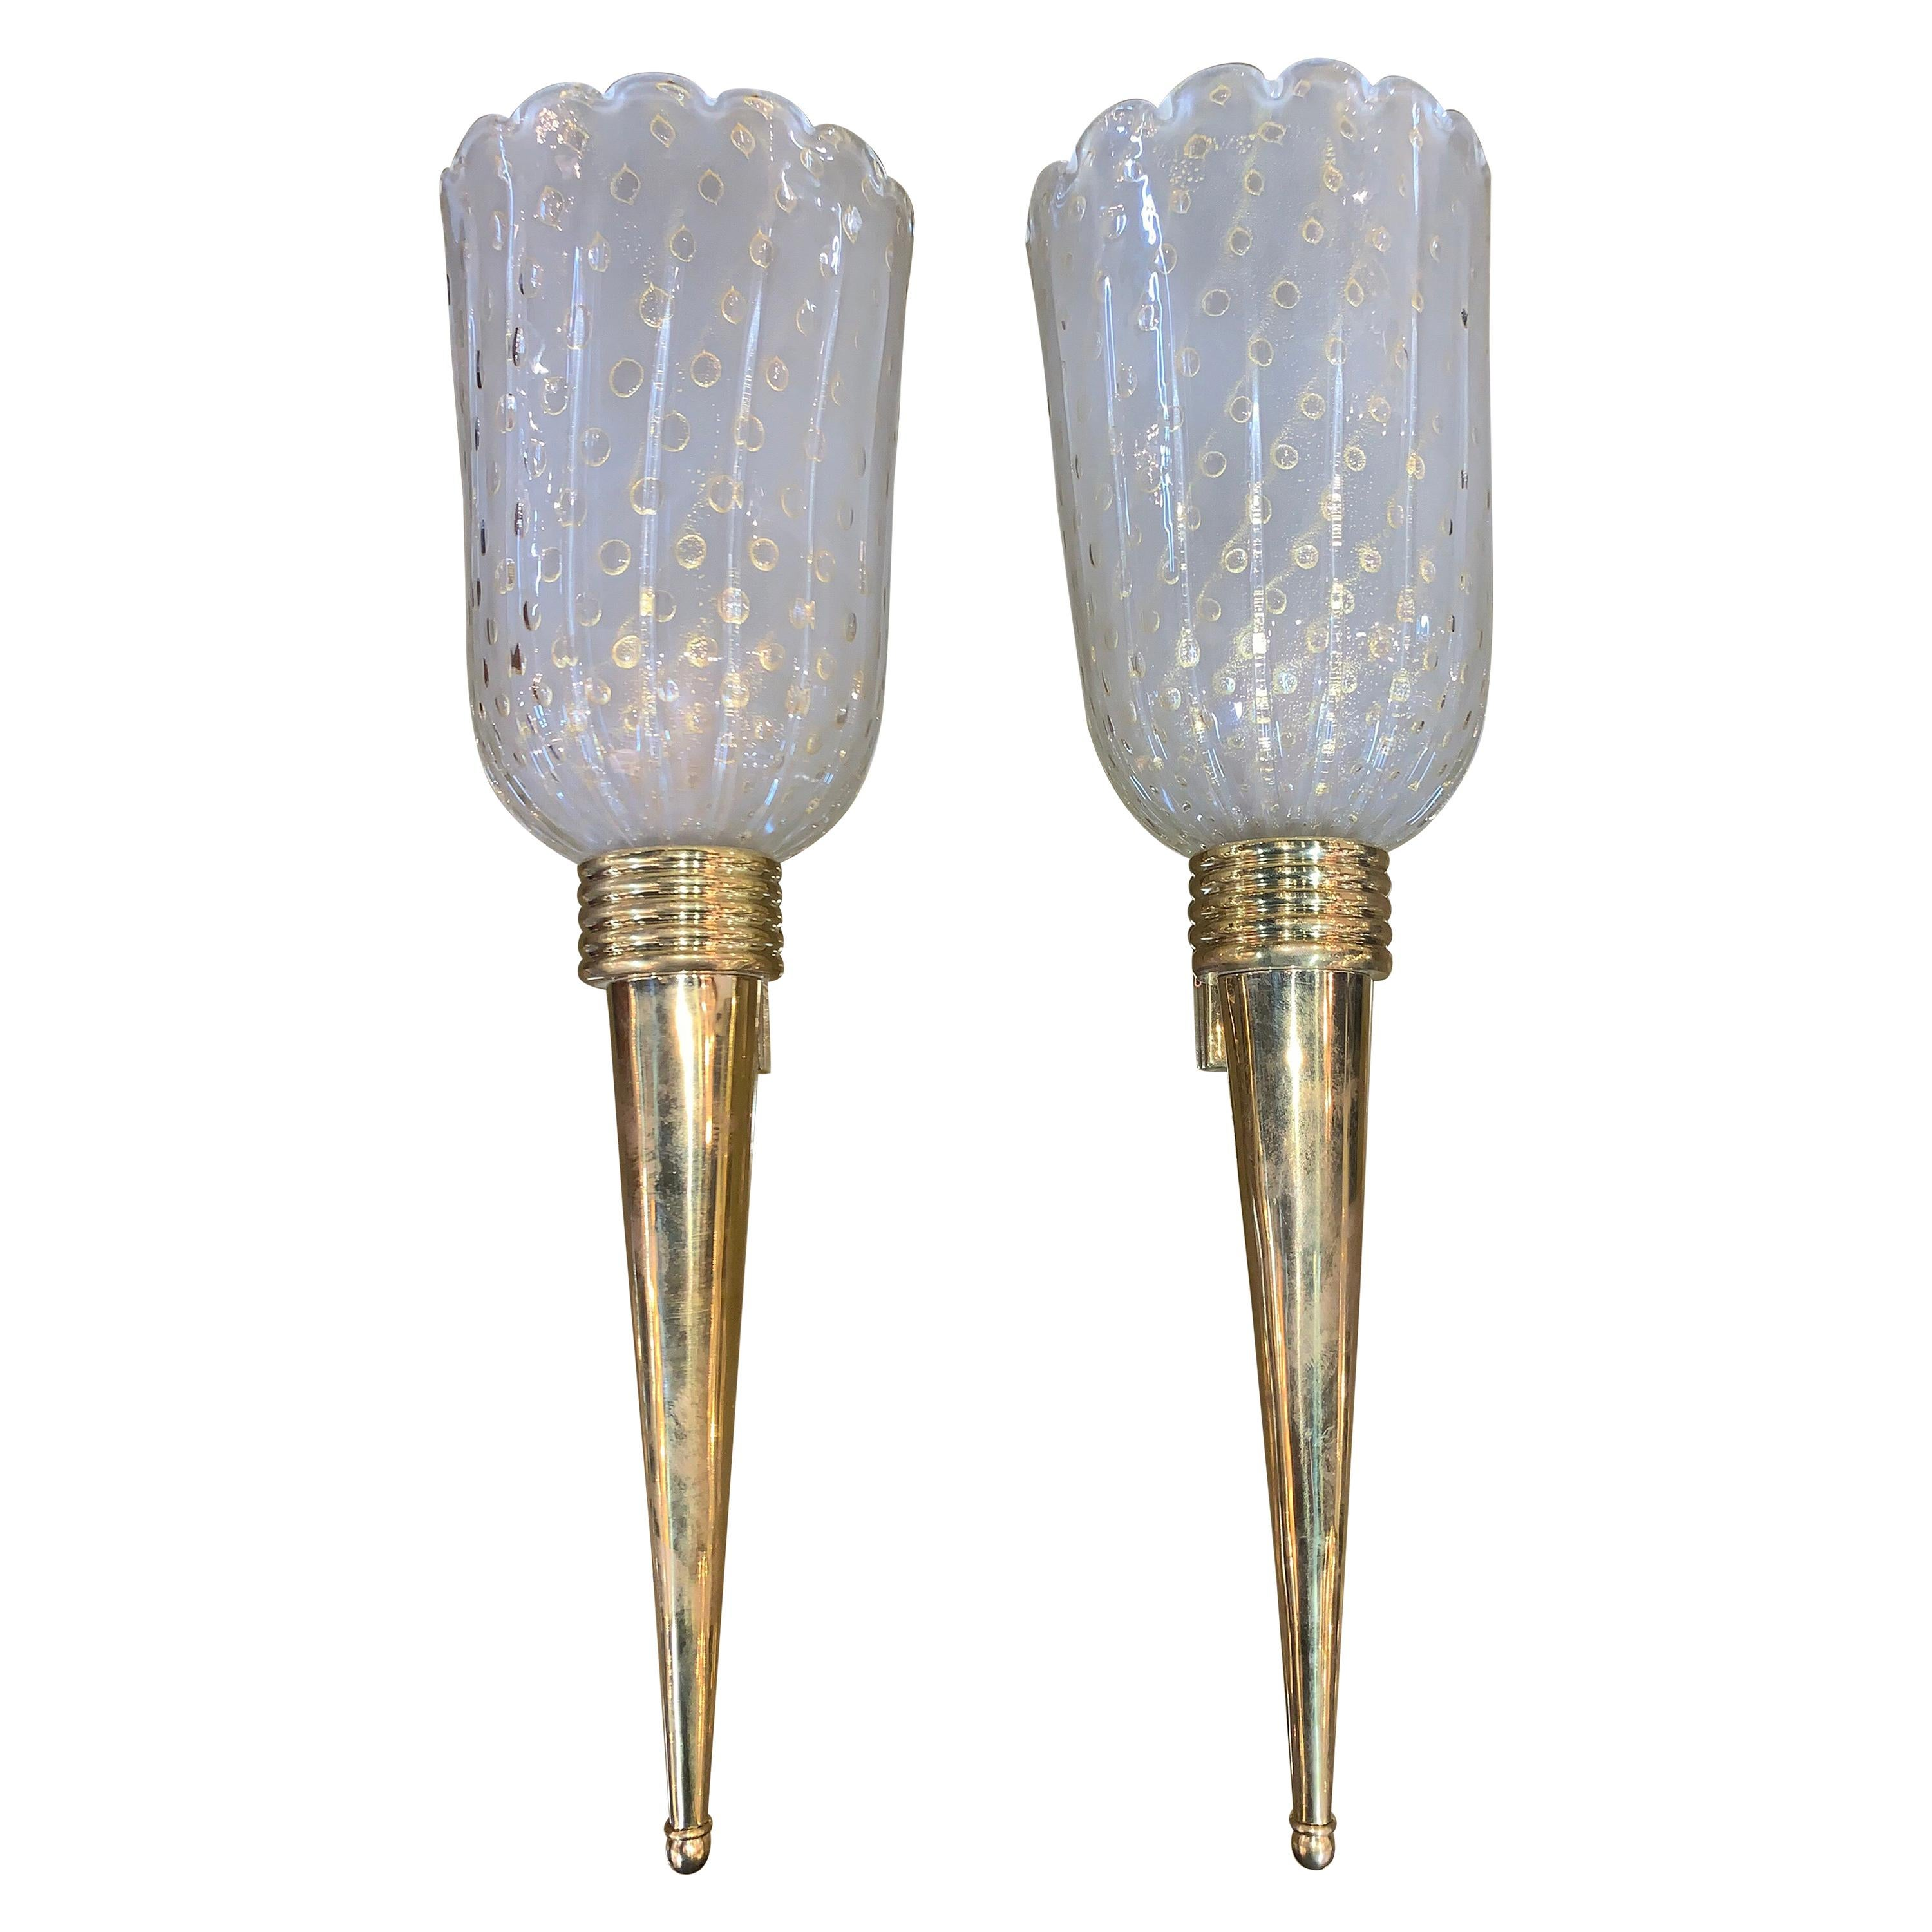 Pair of Italian Murano Midcentury Brass and Glass Sconces